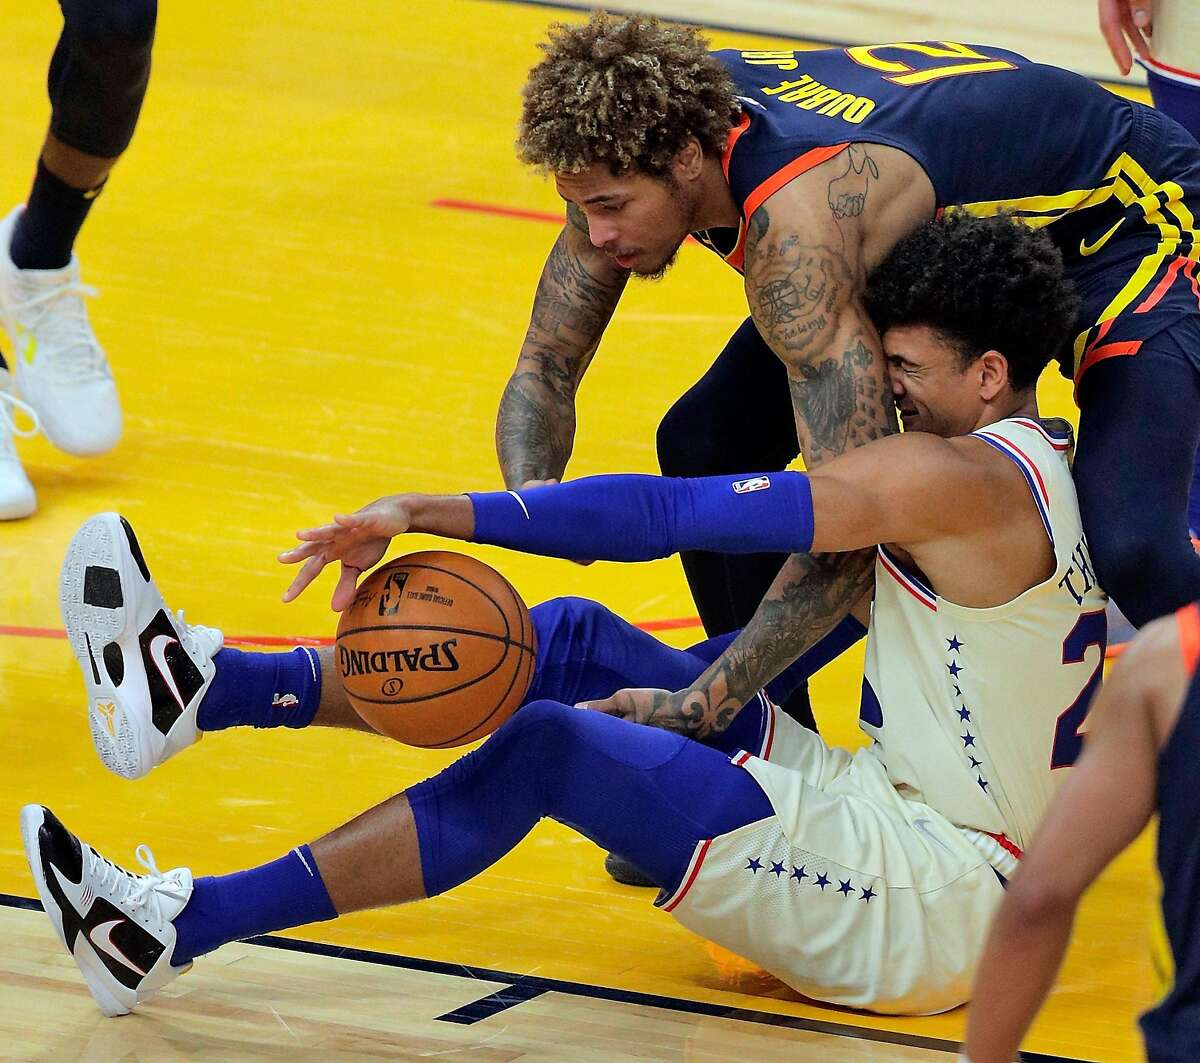 Kelly Oubre Jr. (12) and Matisse Thybull (22) scramble for a loose ball before a jump ball is called in the second half as the Golden State Warriors played the Philadelphia 76ers at Chase Center in San Francisco, Calif., on Tuesday, March 23, 2021.